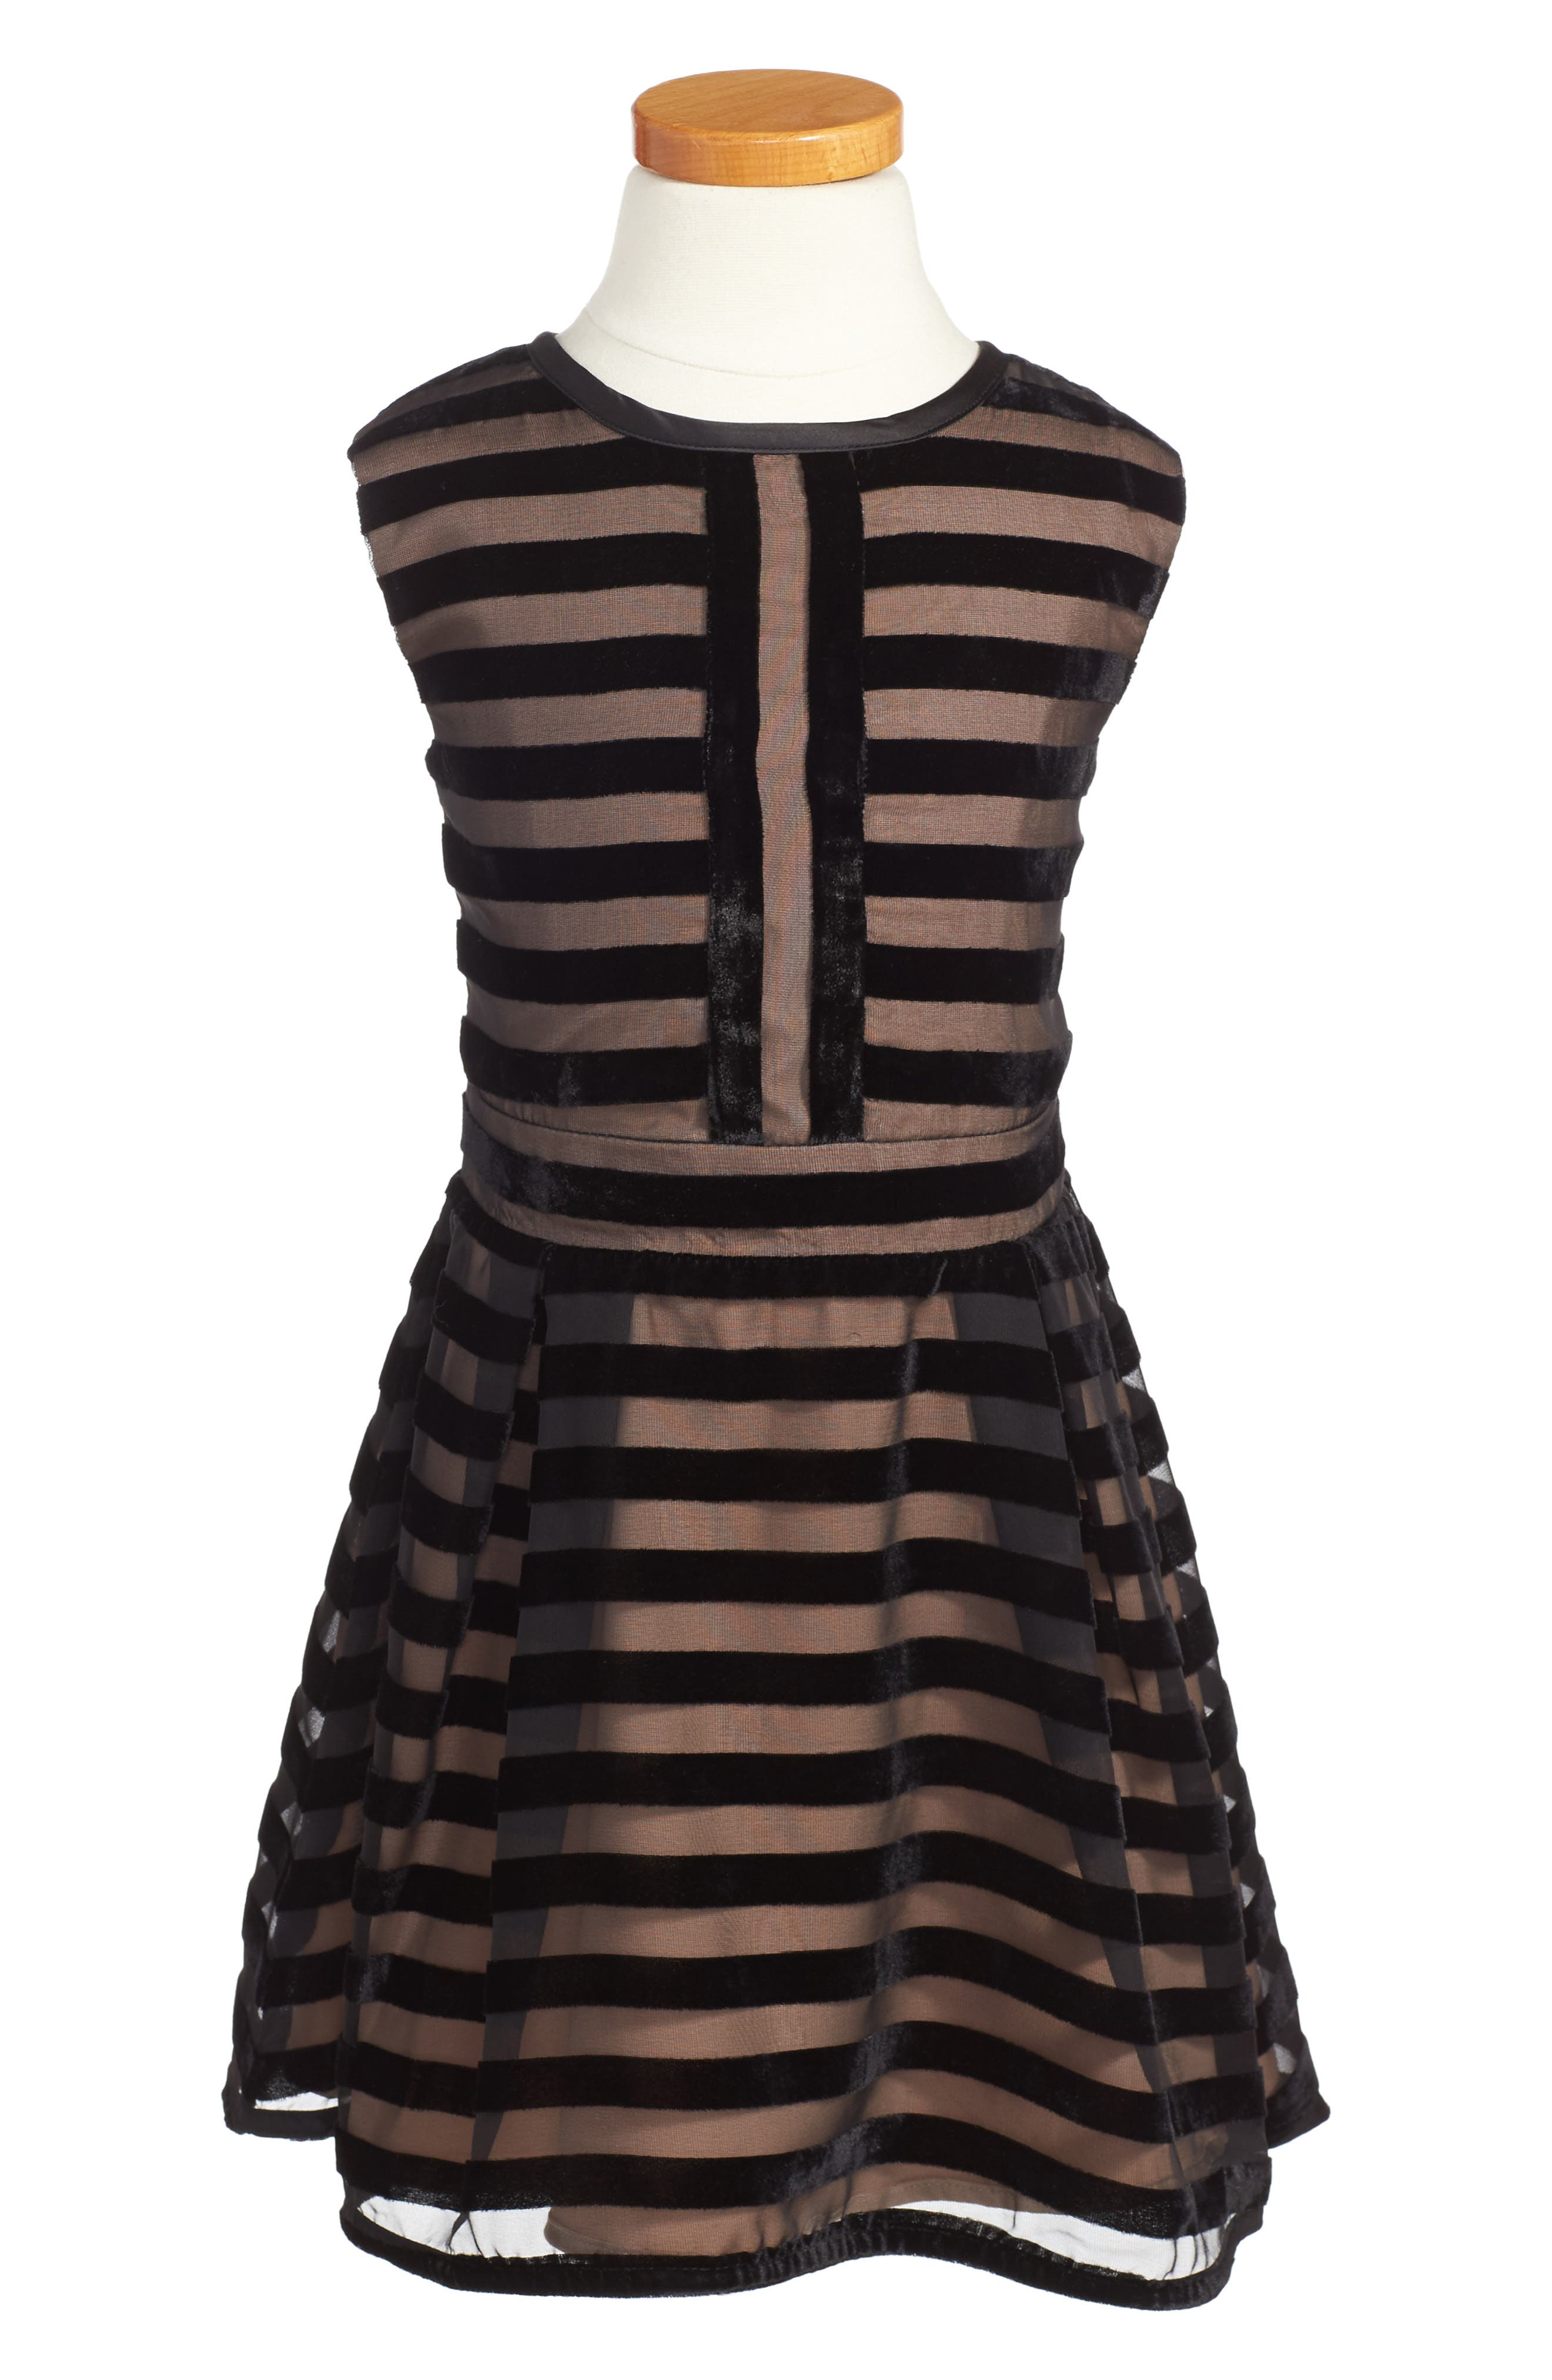 Monteau junior black and white striped dress